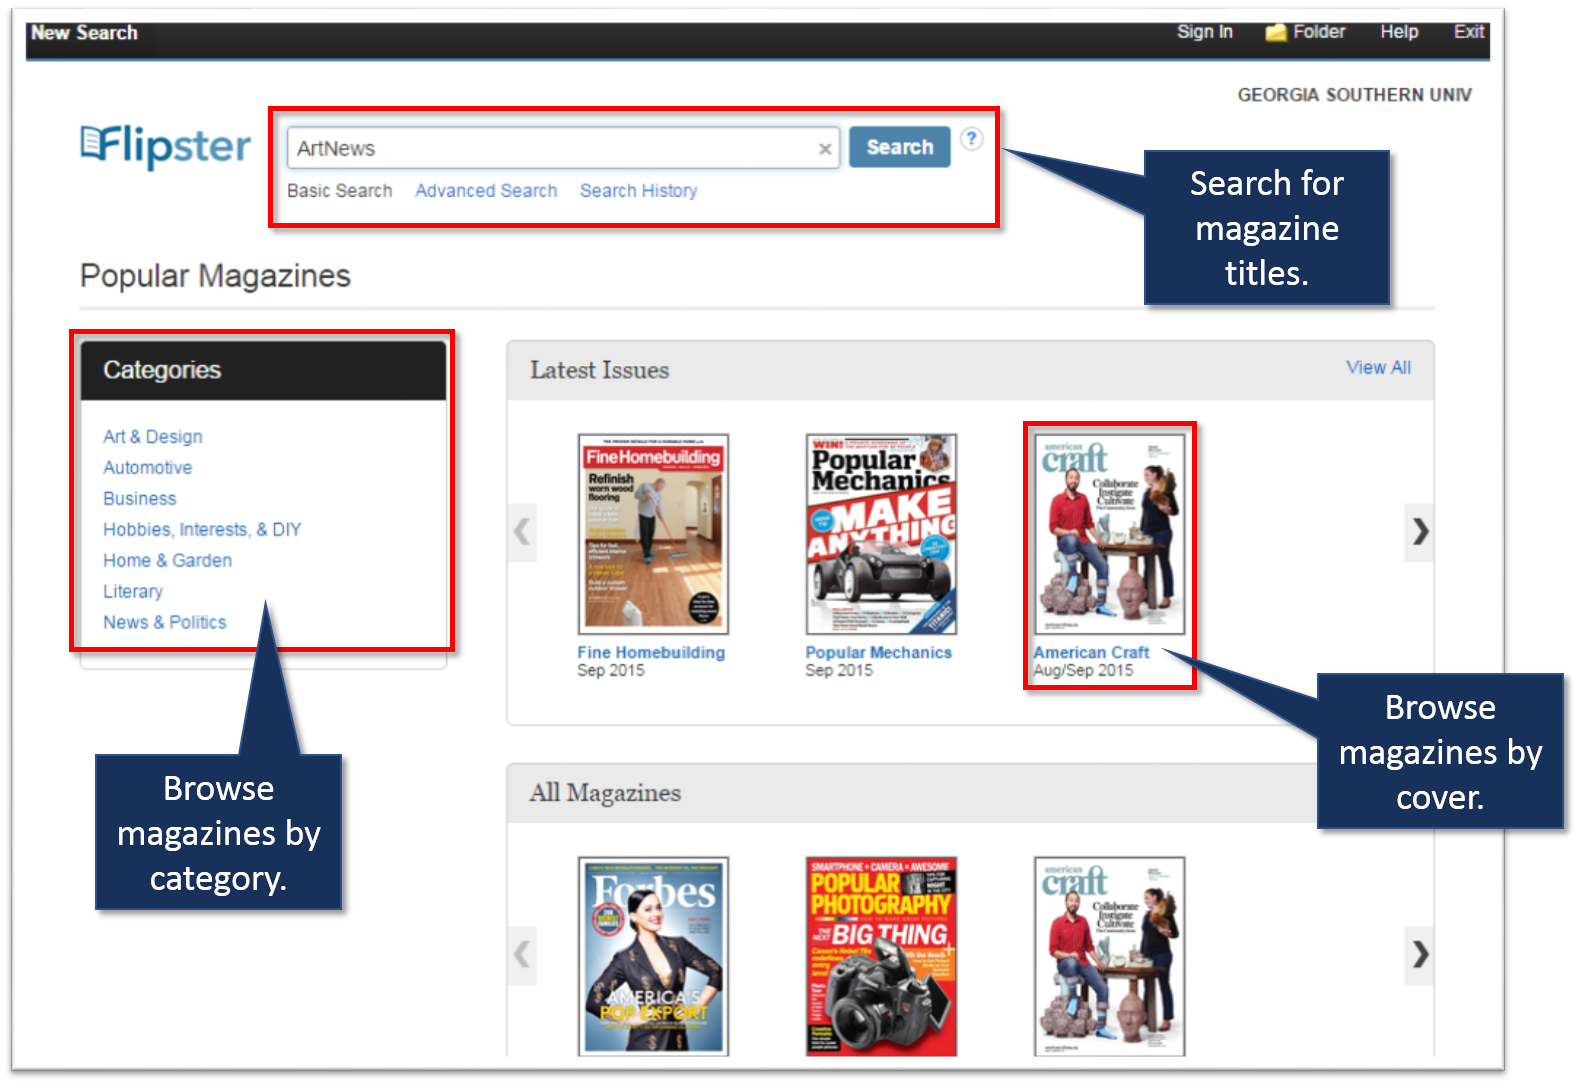 Image of Flipster basic search page with callouts of title search and browse features.